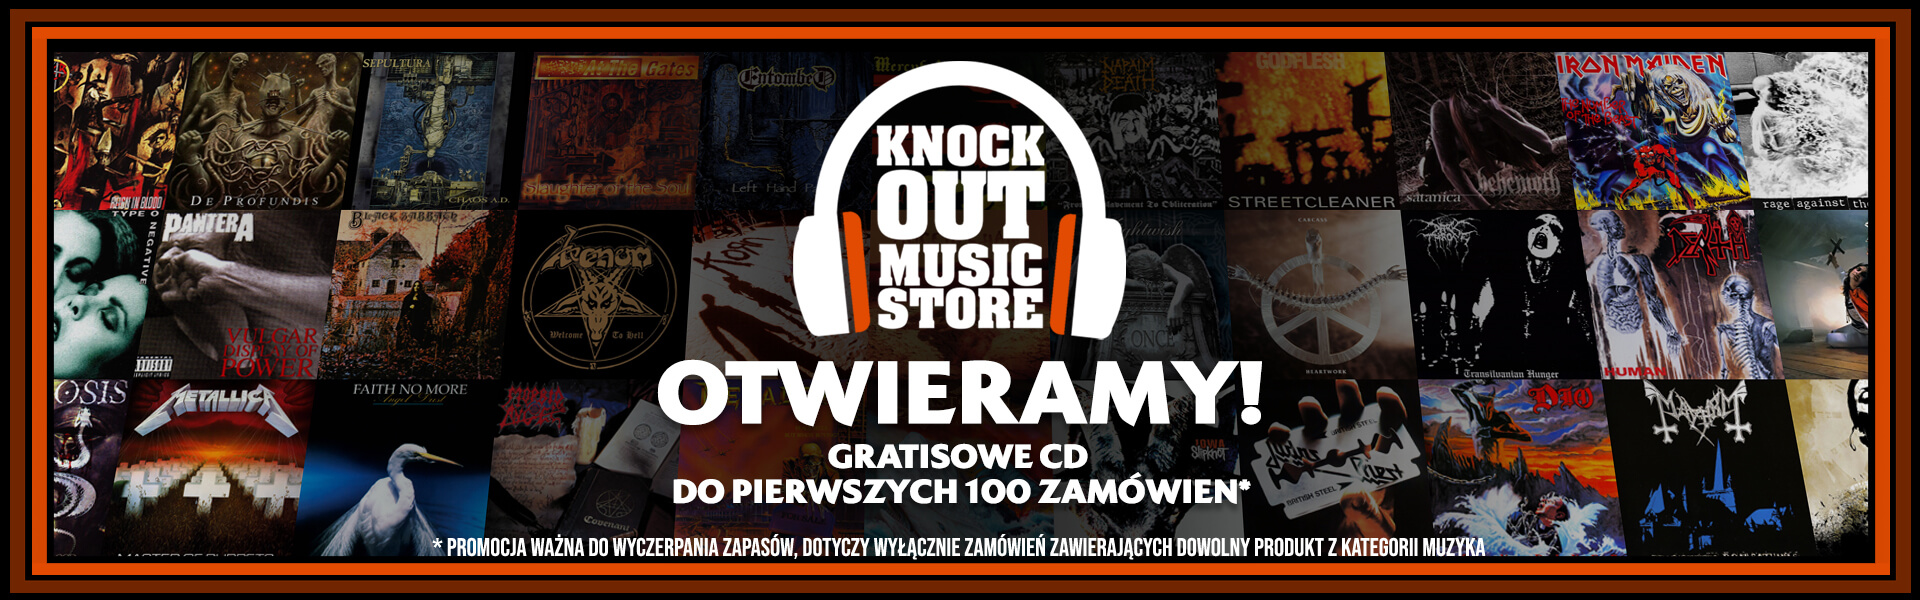 Knock Out Music Store